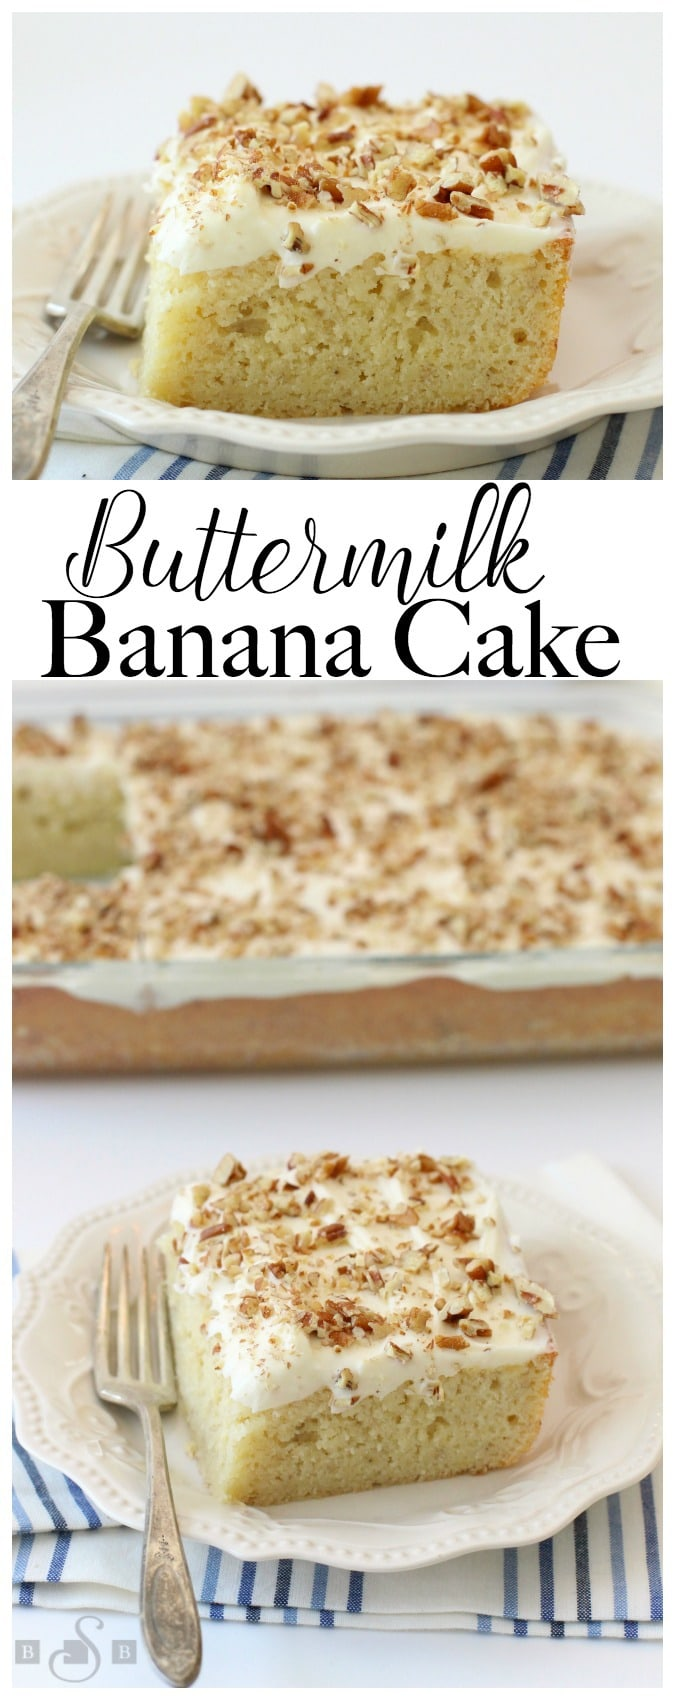 Buttermilk Banana Cake recipe topped with cream cheese frosting for anyone who loves bananas! Fantastic flavor in this moist banana cake- don't skimp on the frosting!